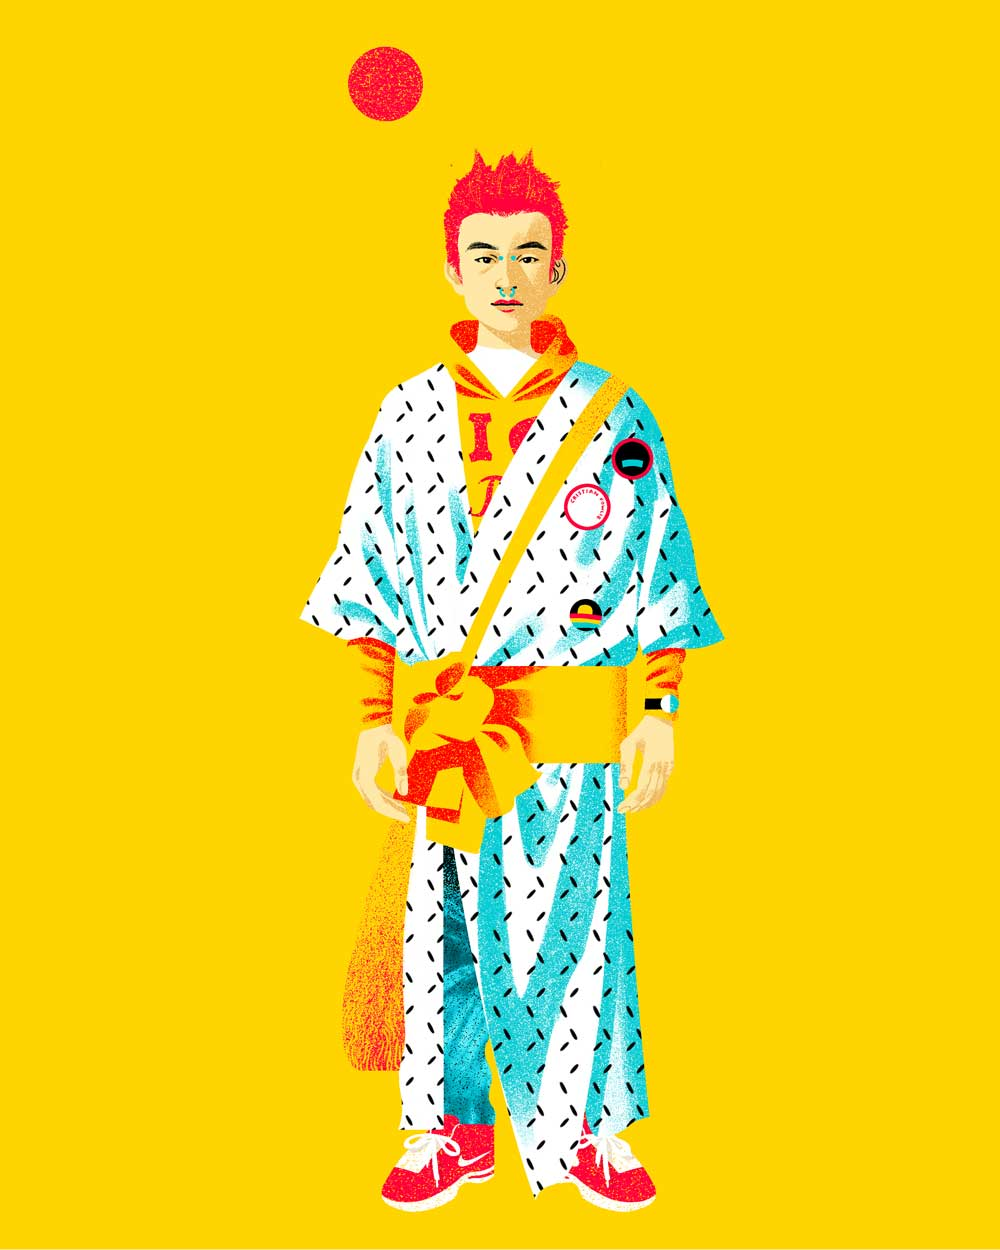 Digital fashion illustration of Japanese street style from Fruits.